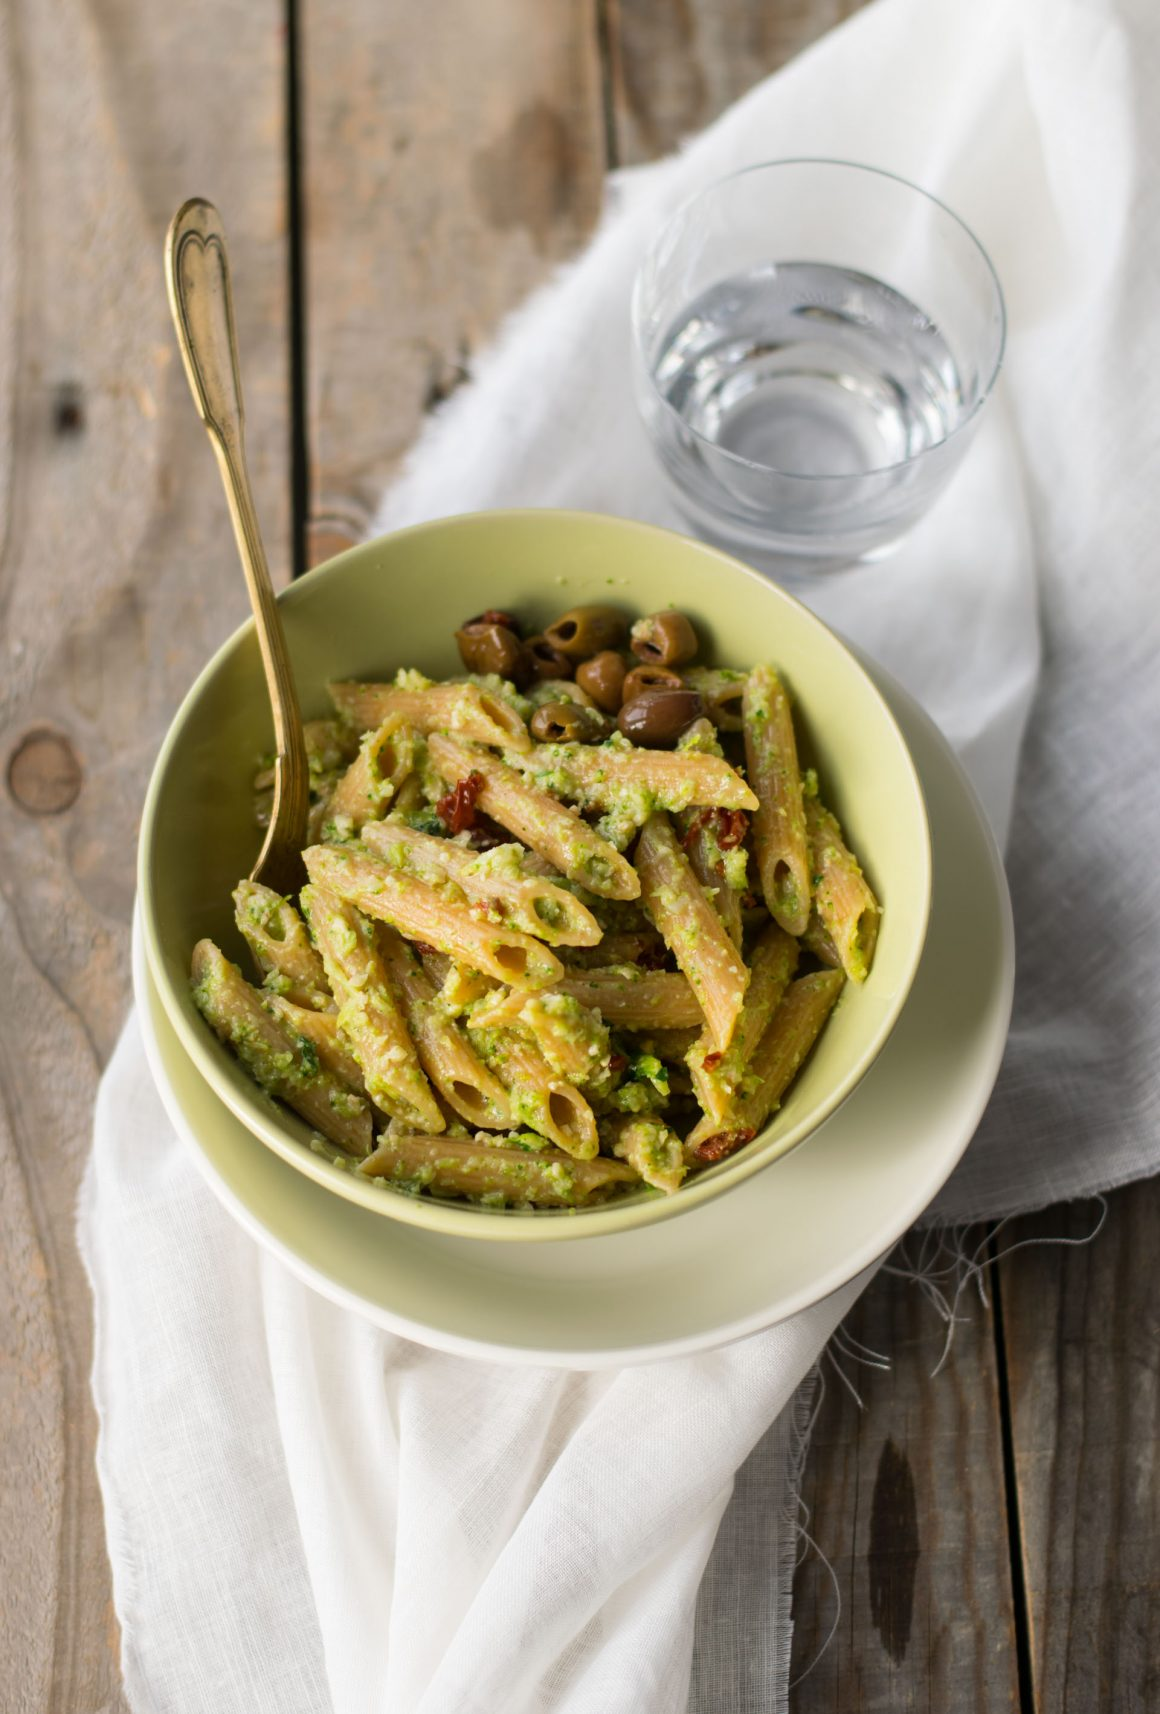 Penne al pesto di broccoli-6